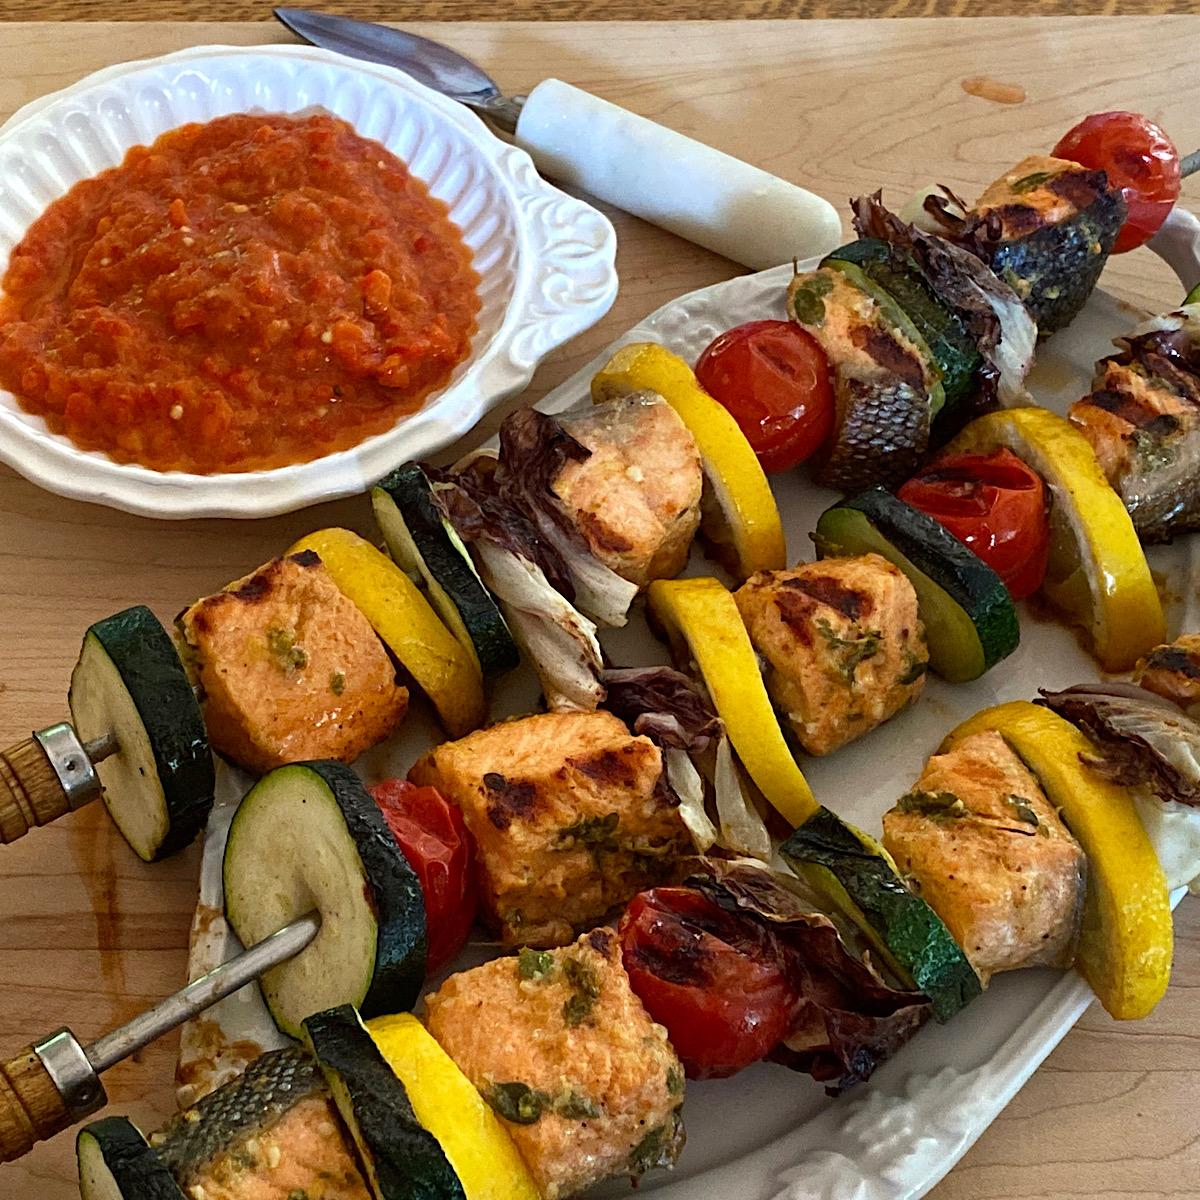 Low carb salmon and vegetable kebabs with ajvar dipping sauce